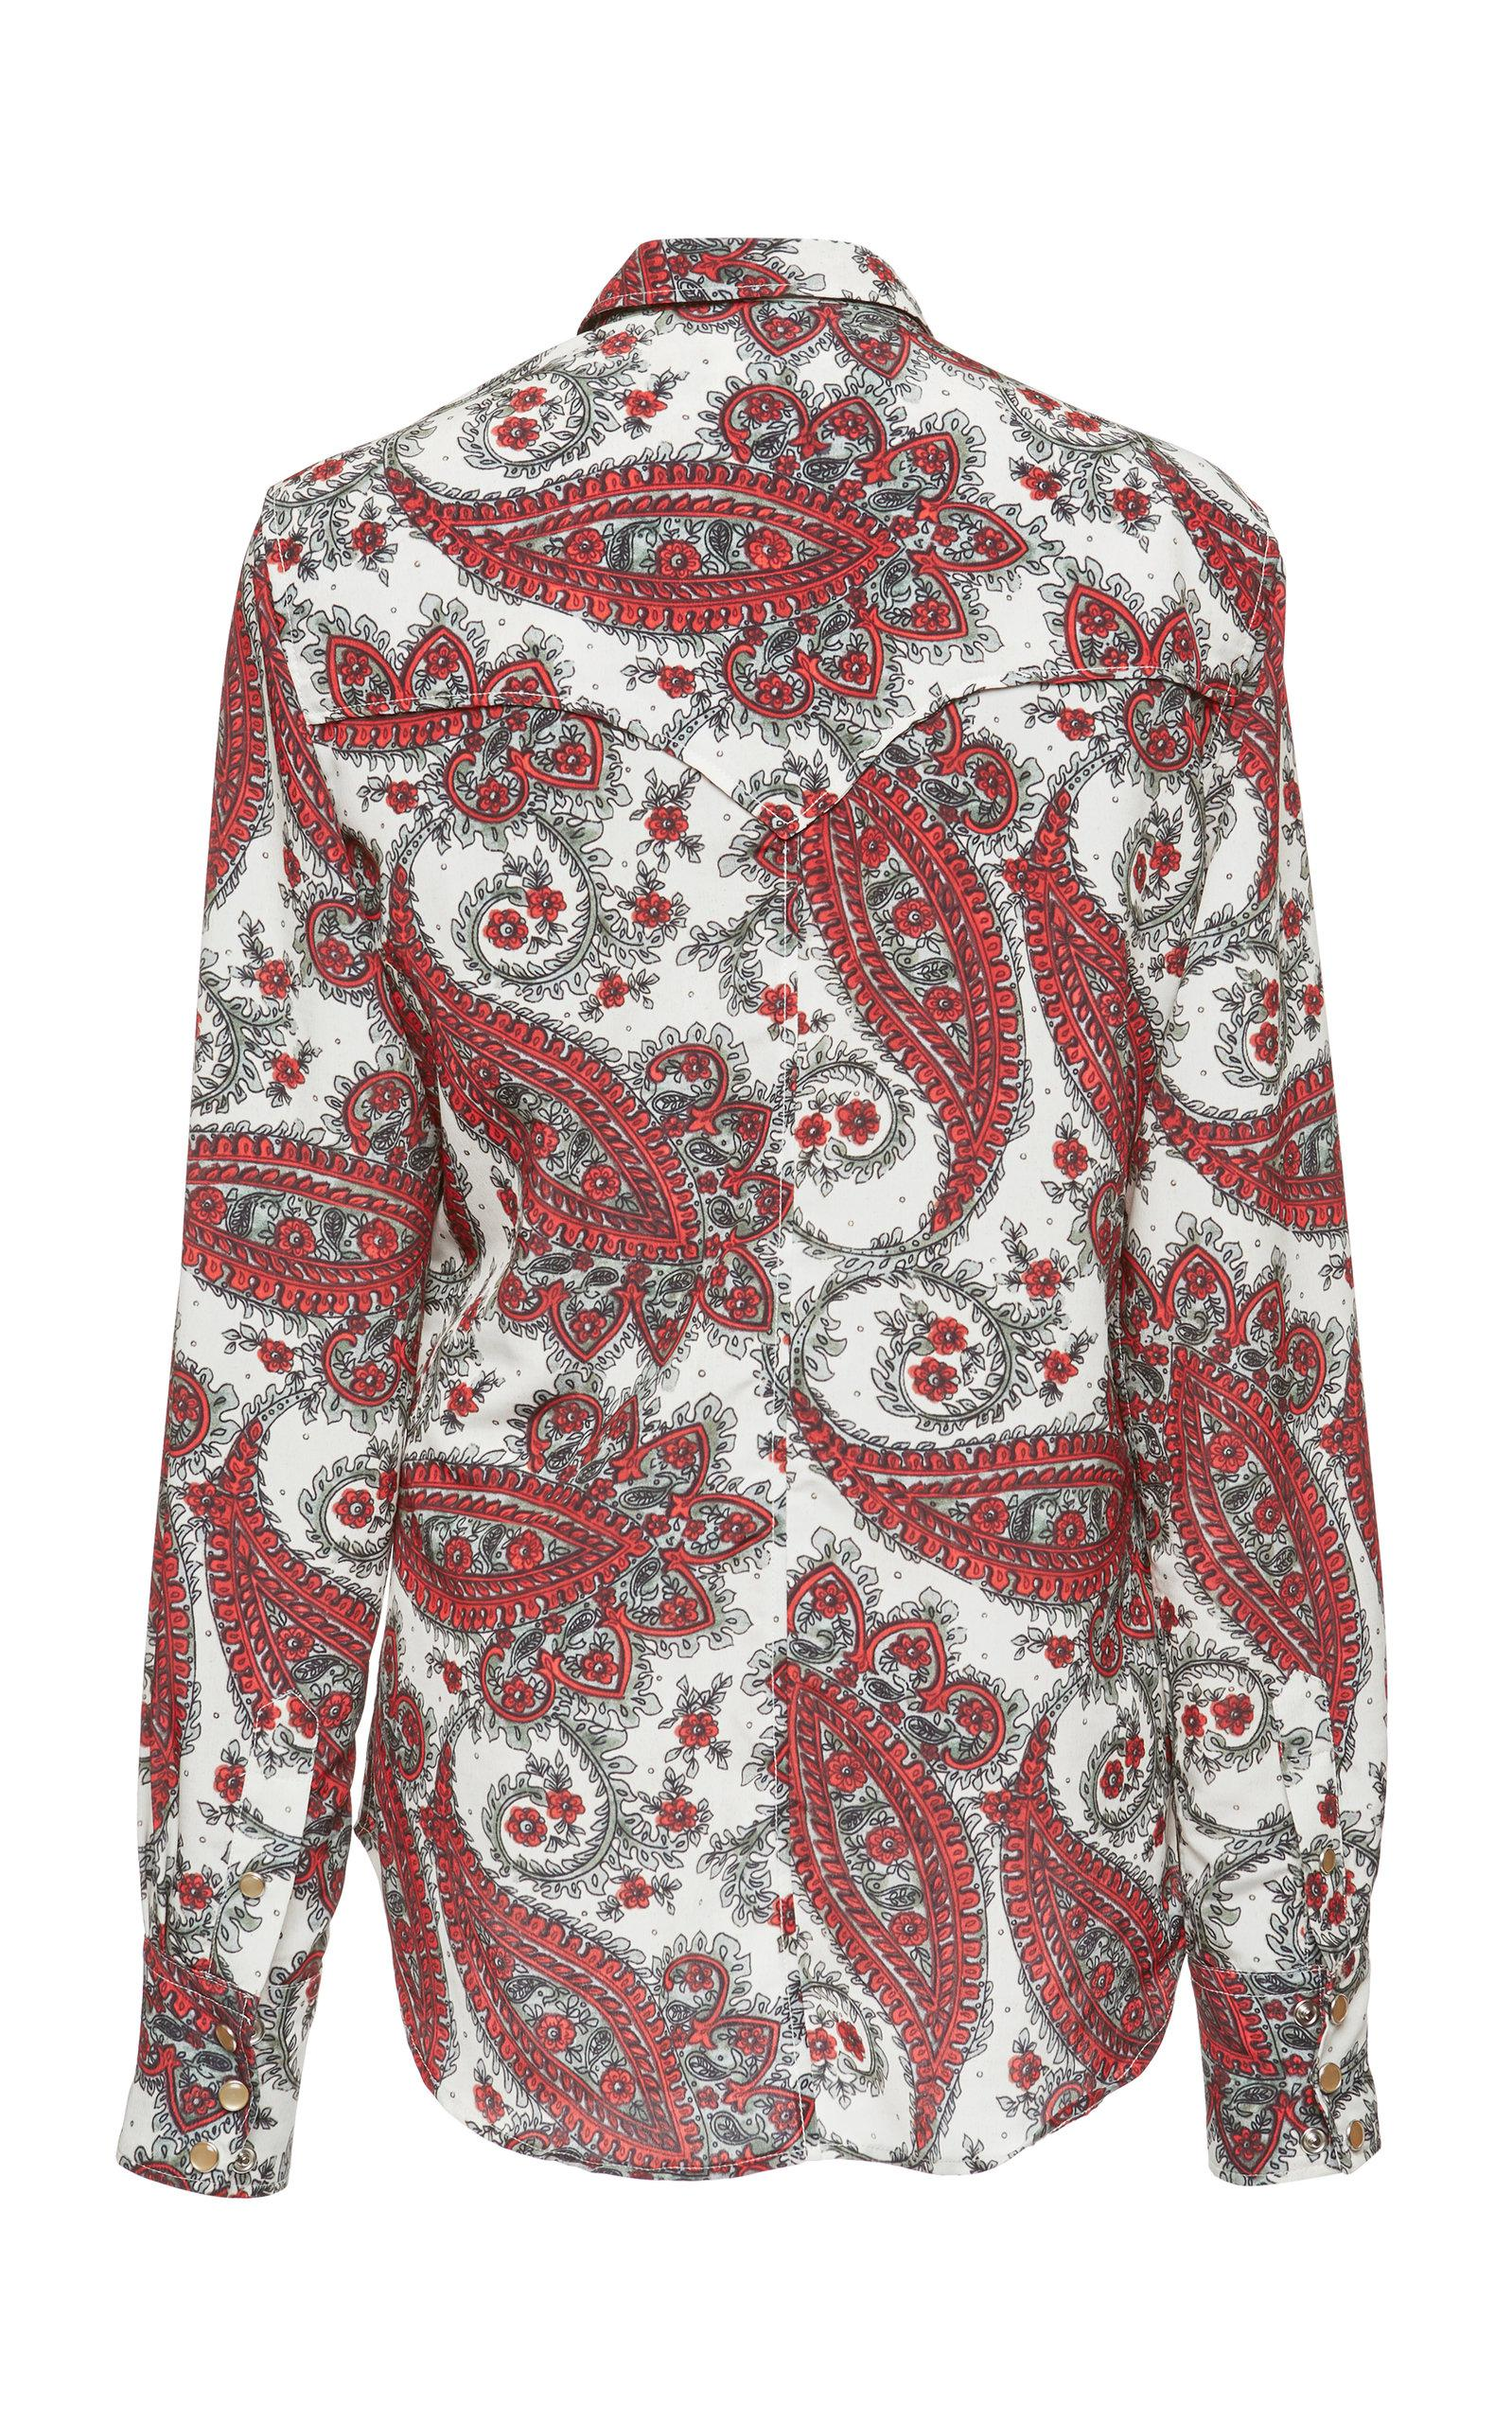 Isabel Marant Synthetic Tania Shirt in Red